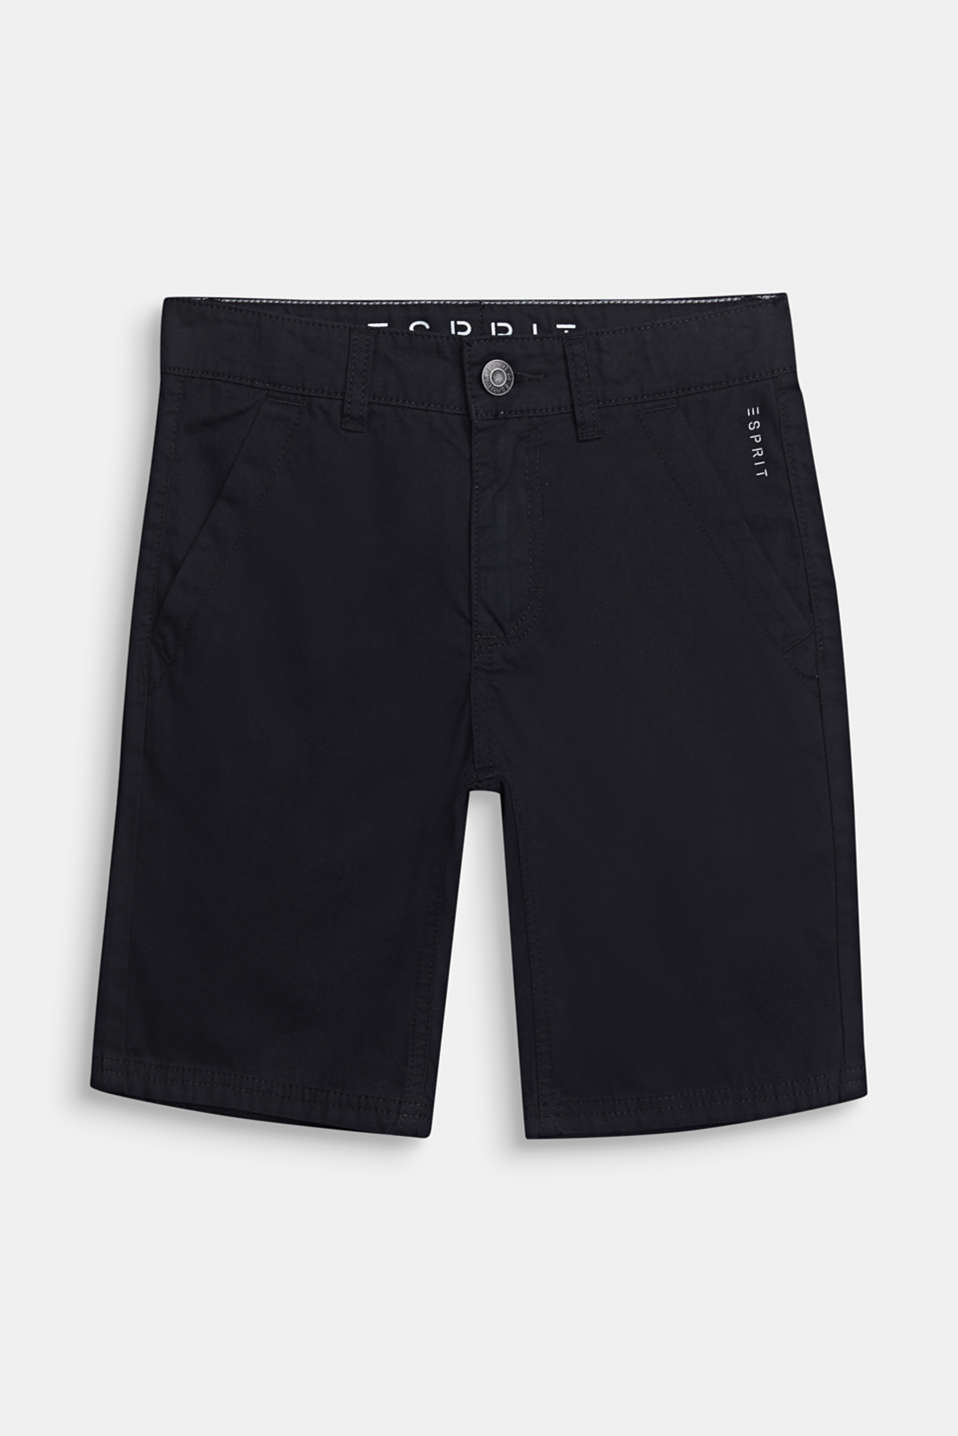 Bermuda shorts in 100% cotton, adjustable waistband, LCBLACK, detail image number 0